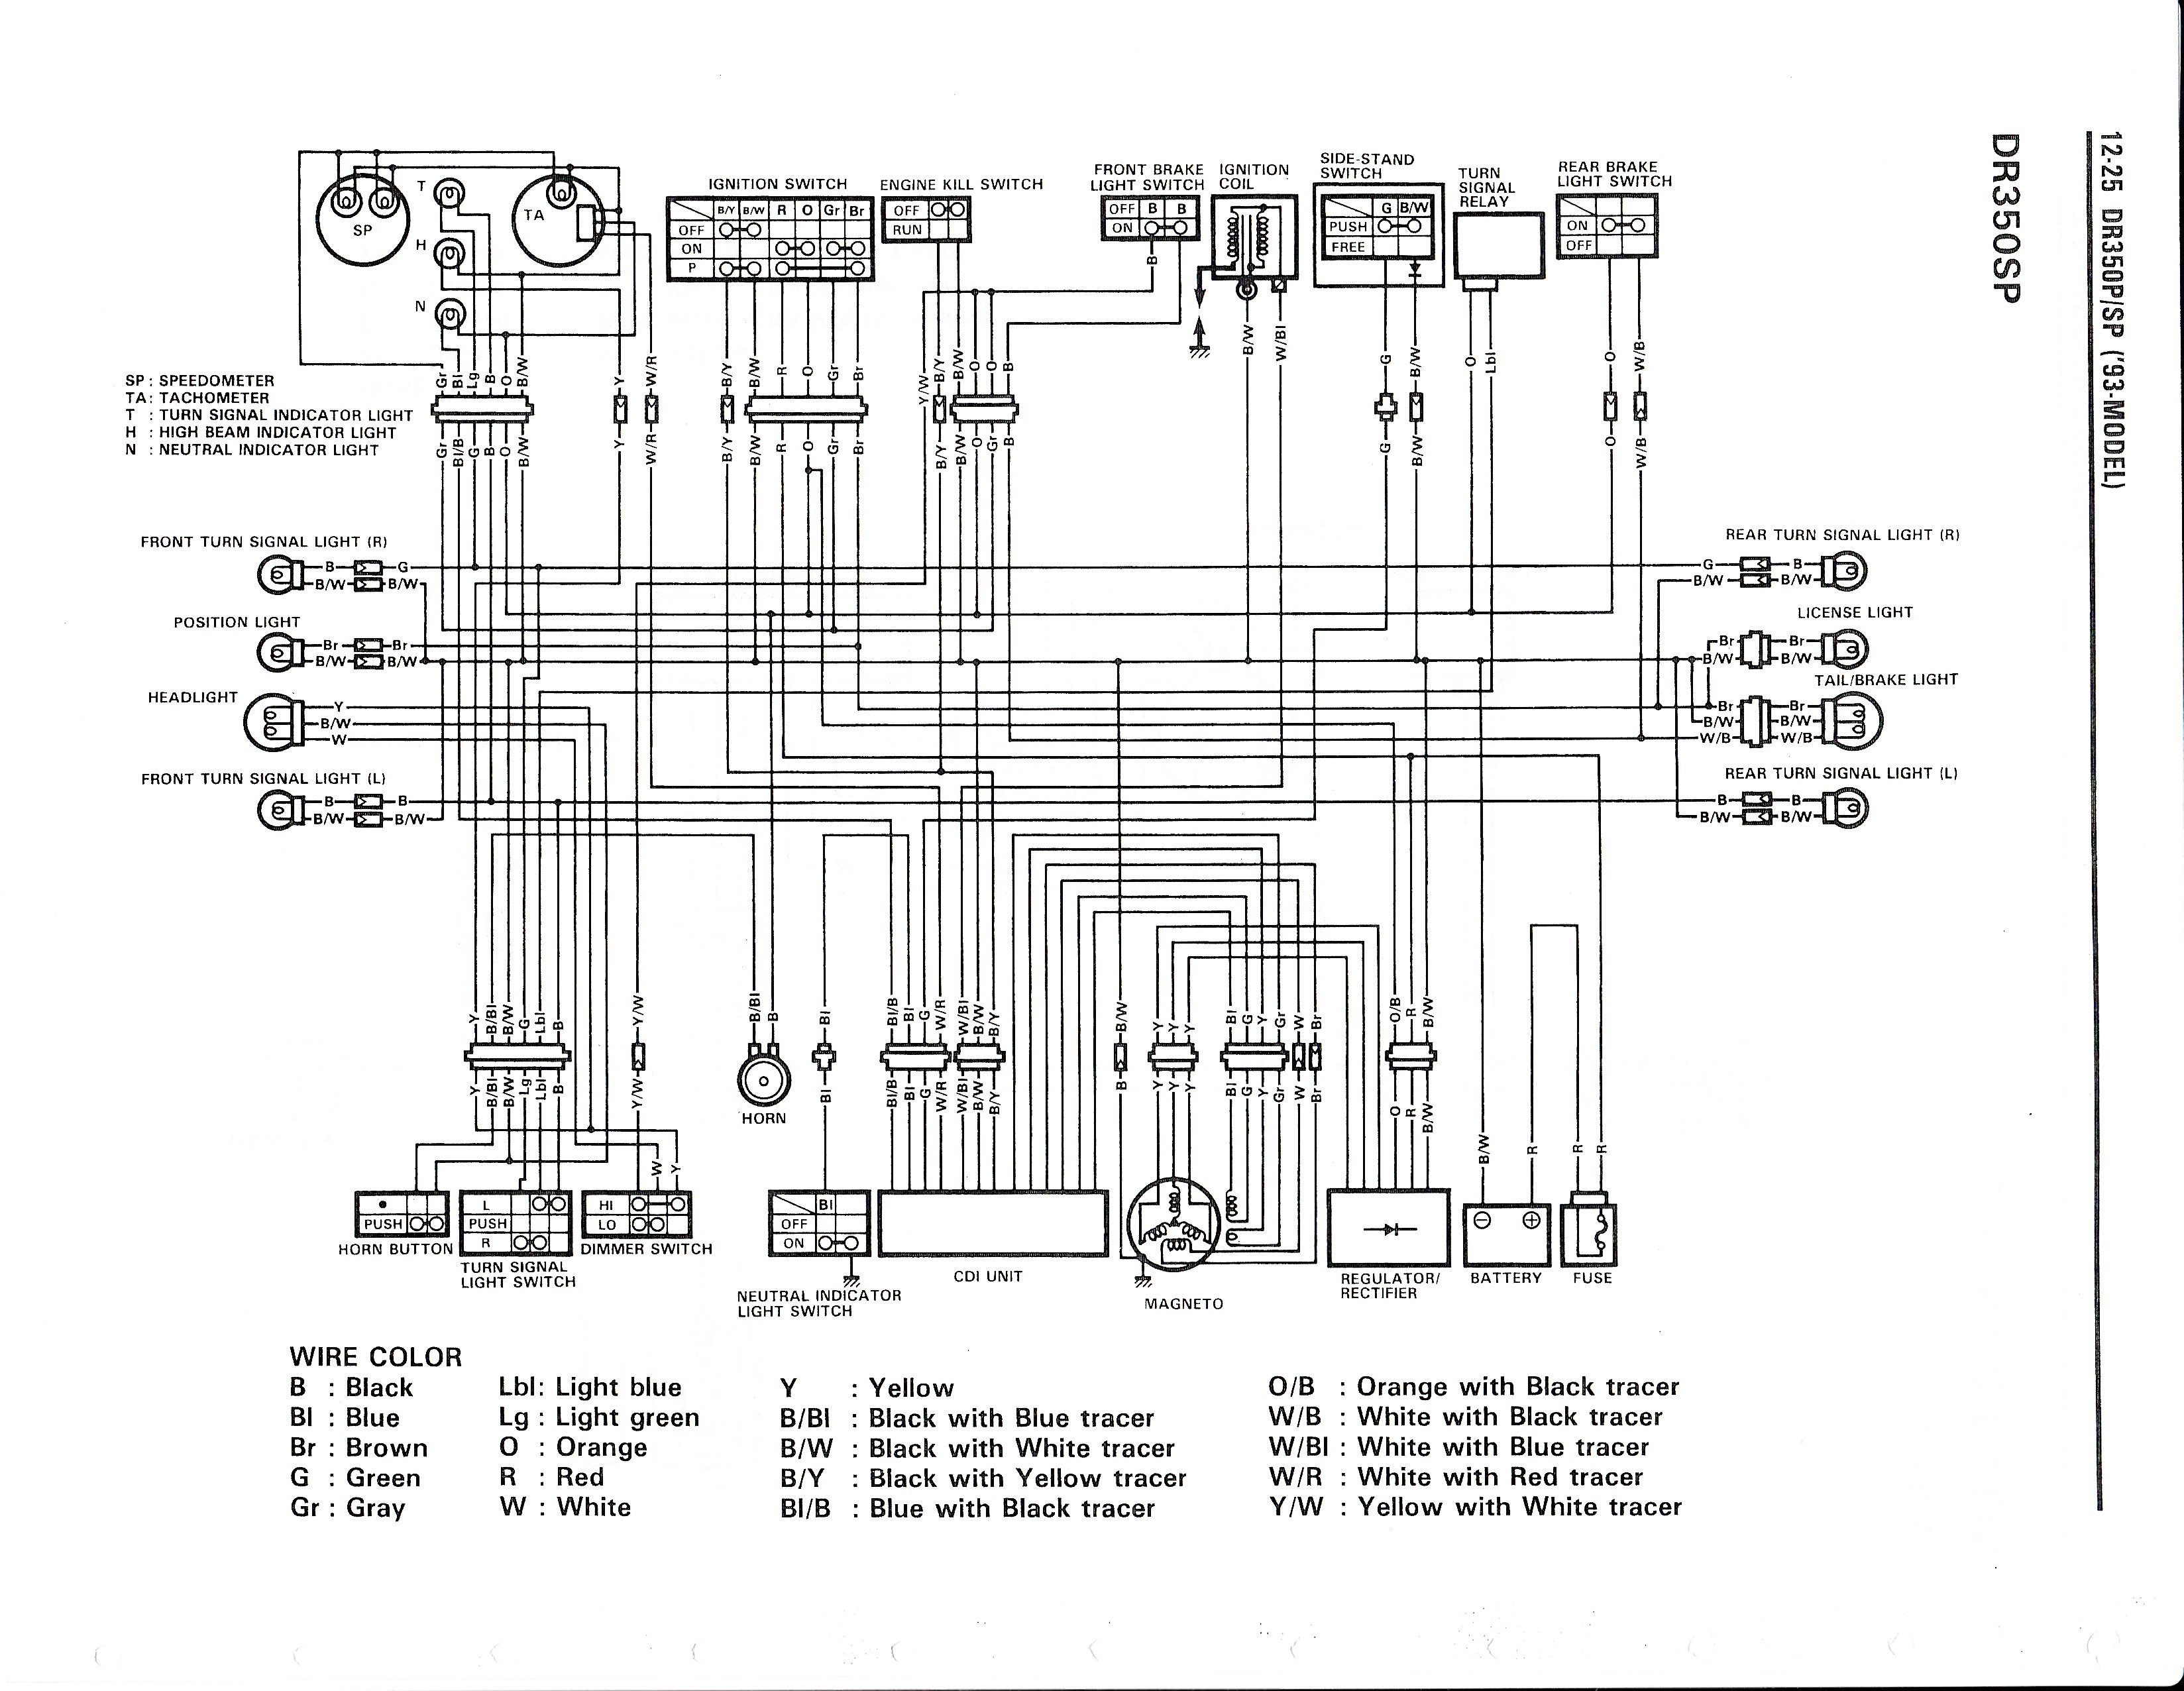 wiring diagram for the dr350 s (1993 and later models) suzuki on Raptor 350 Wiring Diagram for wiring diagram for the dr350 s (1993 and later models) at suzuki dr350 wiring diagram